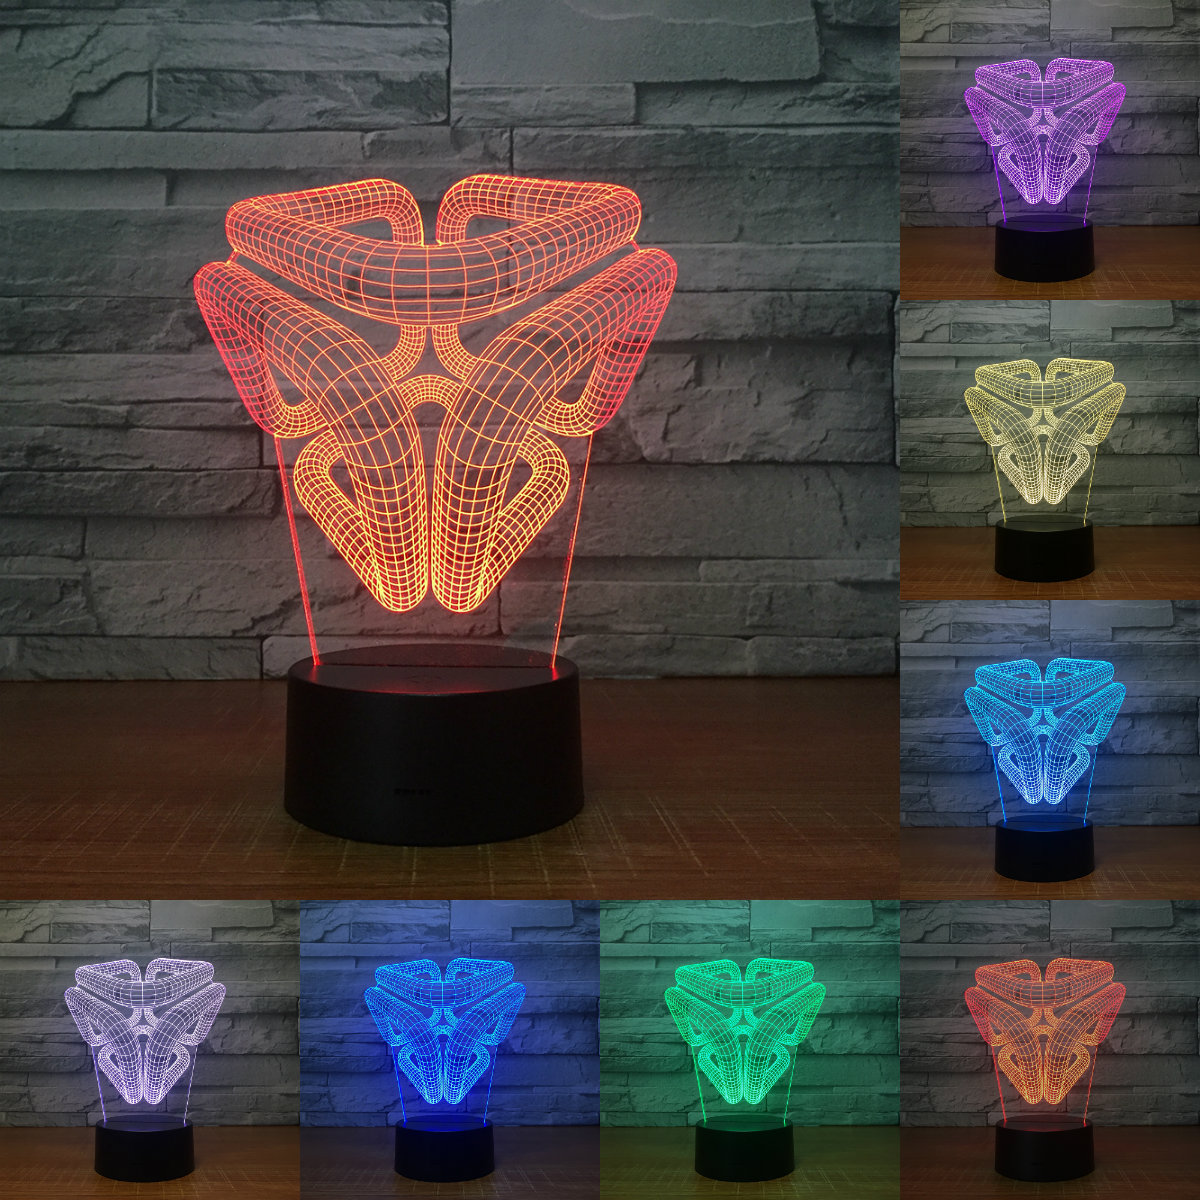 Creative 3D Illusion Lamp LED Desk Night Light 3D Abstract Graphics Acrylic Lamparas Atmosphere Lamp Novelty Lighting IY803059